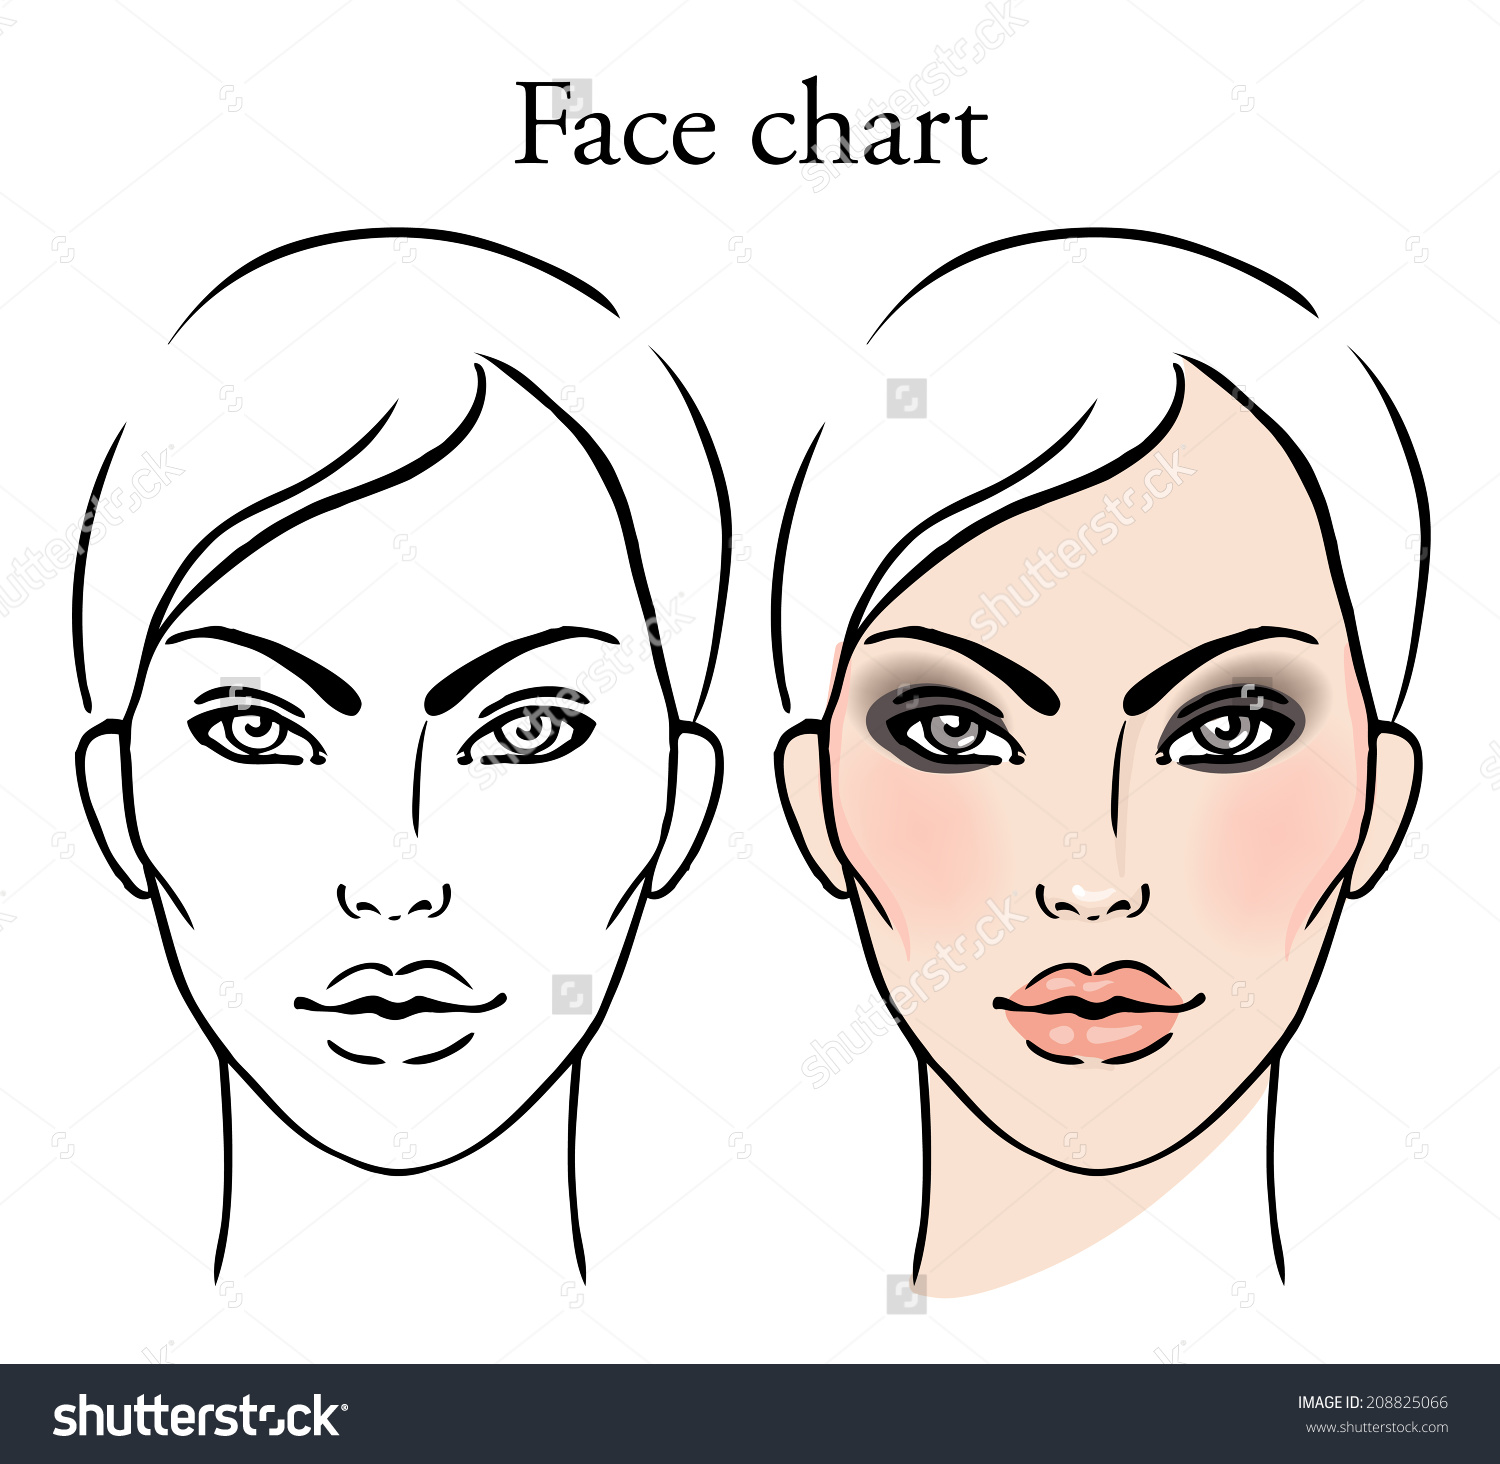 Blank Face Drawing at GetDrawings | Free download